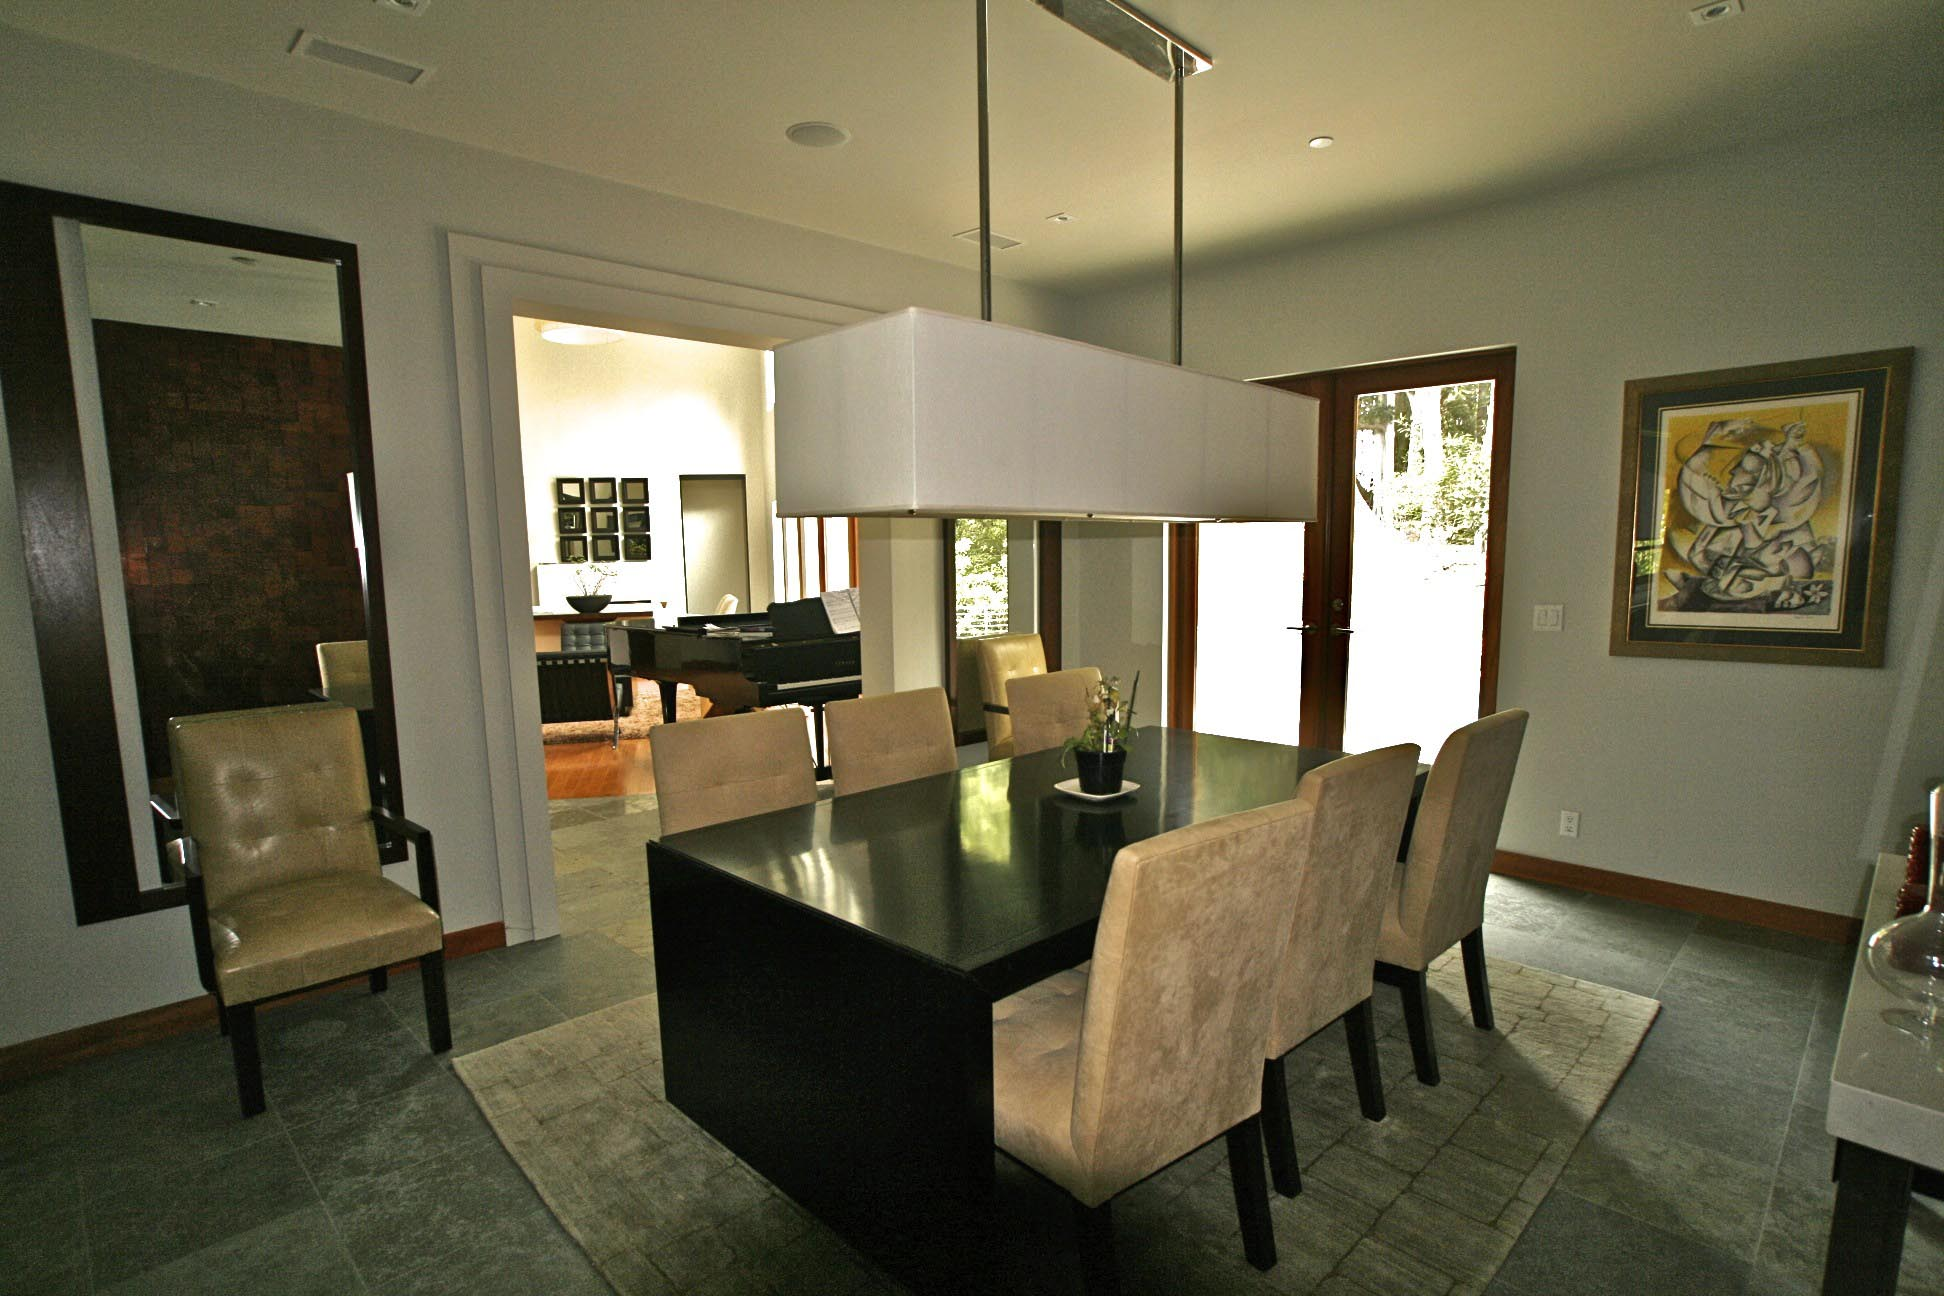 Dining Room Modern Lighting Dining Light Fixtures Make The Dining Room Bright And Warm